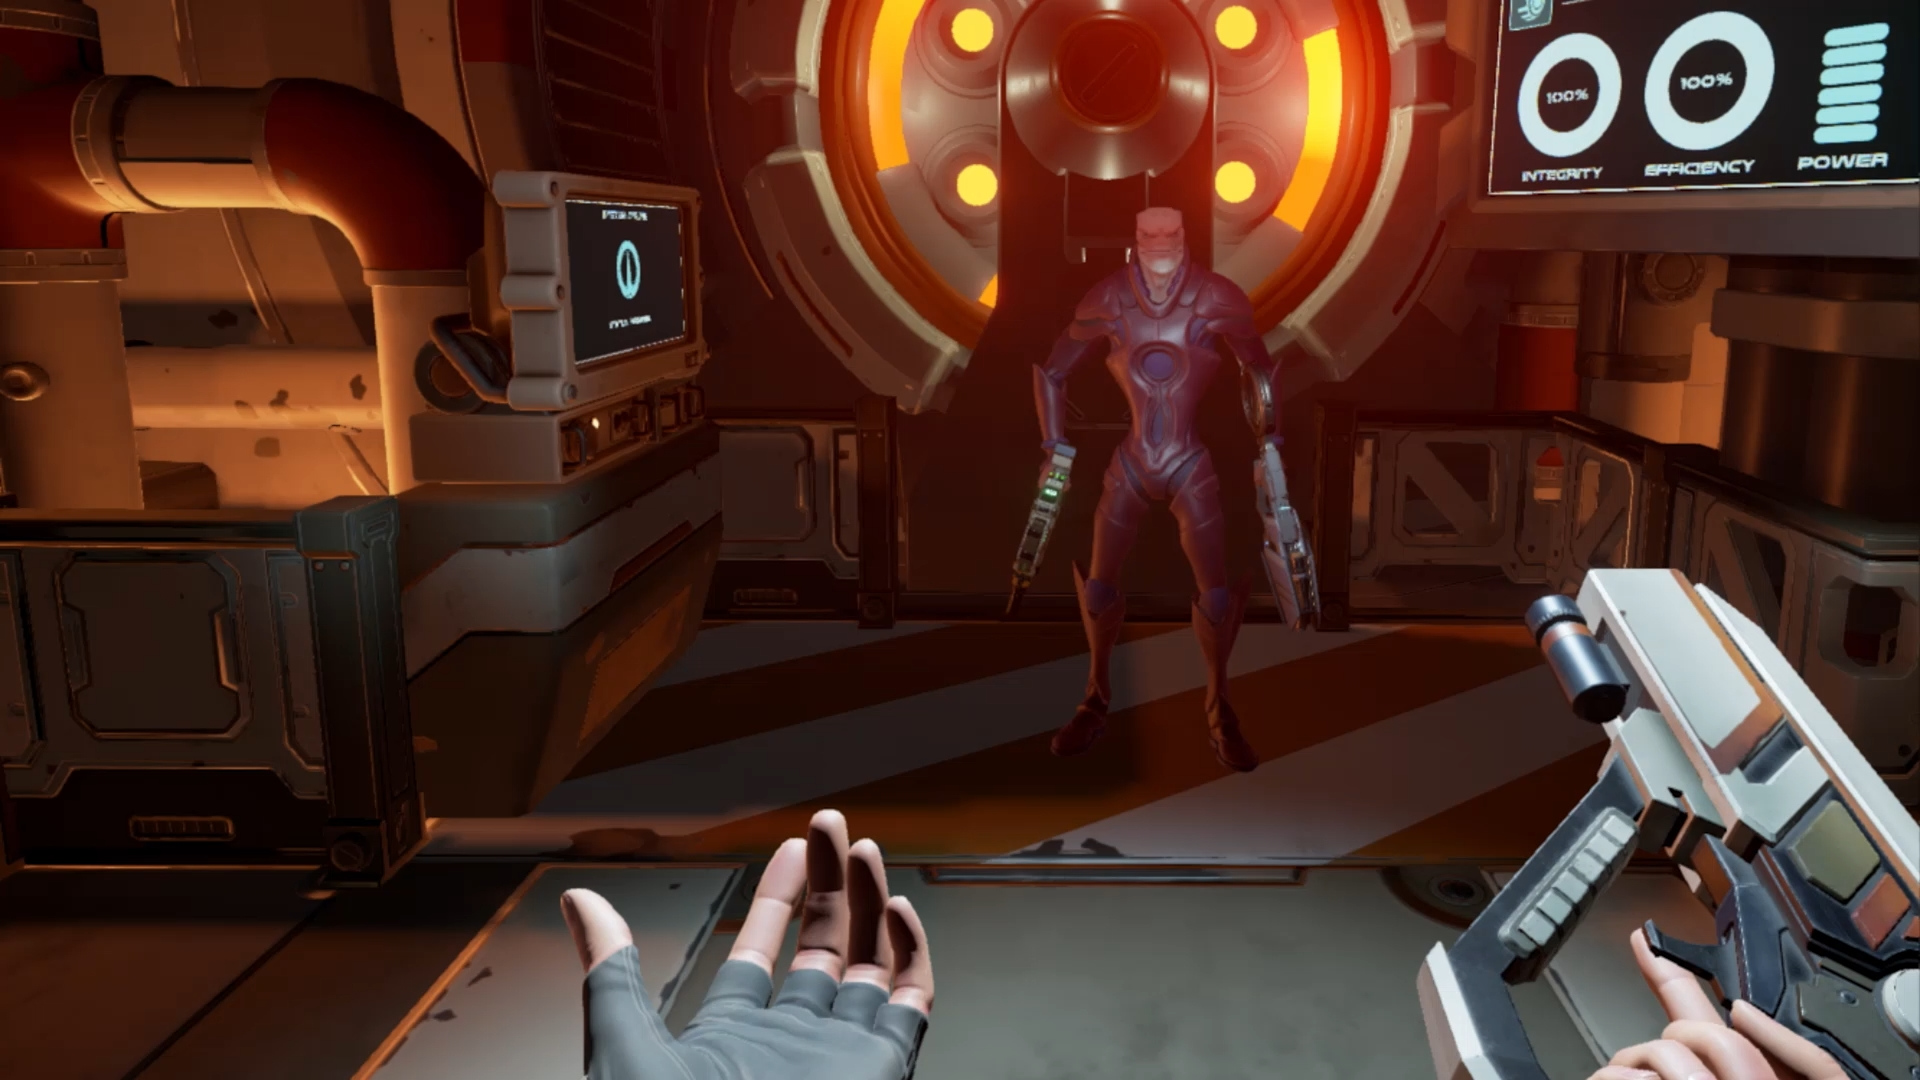 'From Other Suns' lets players move in VR however they want